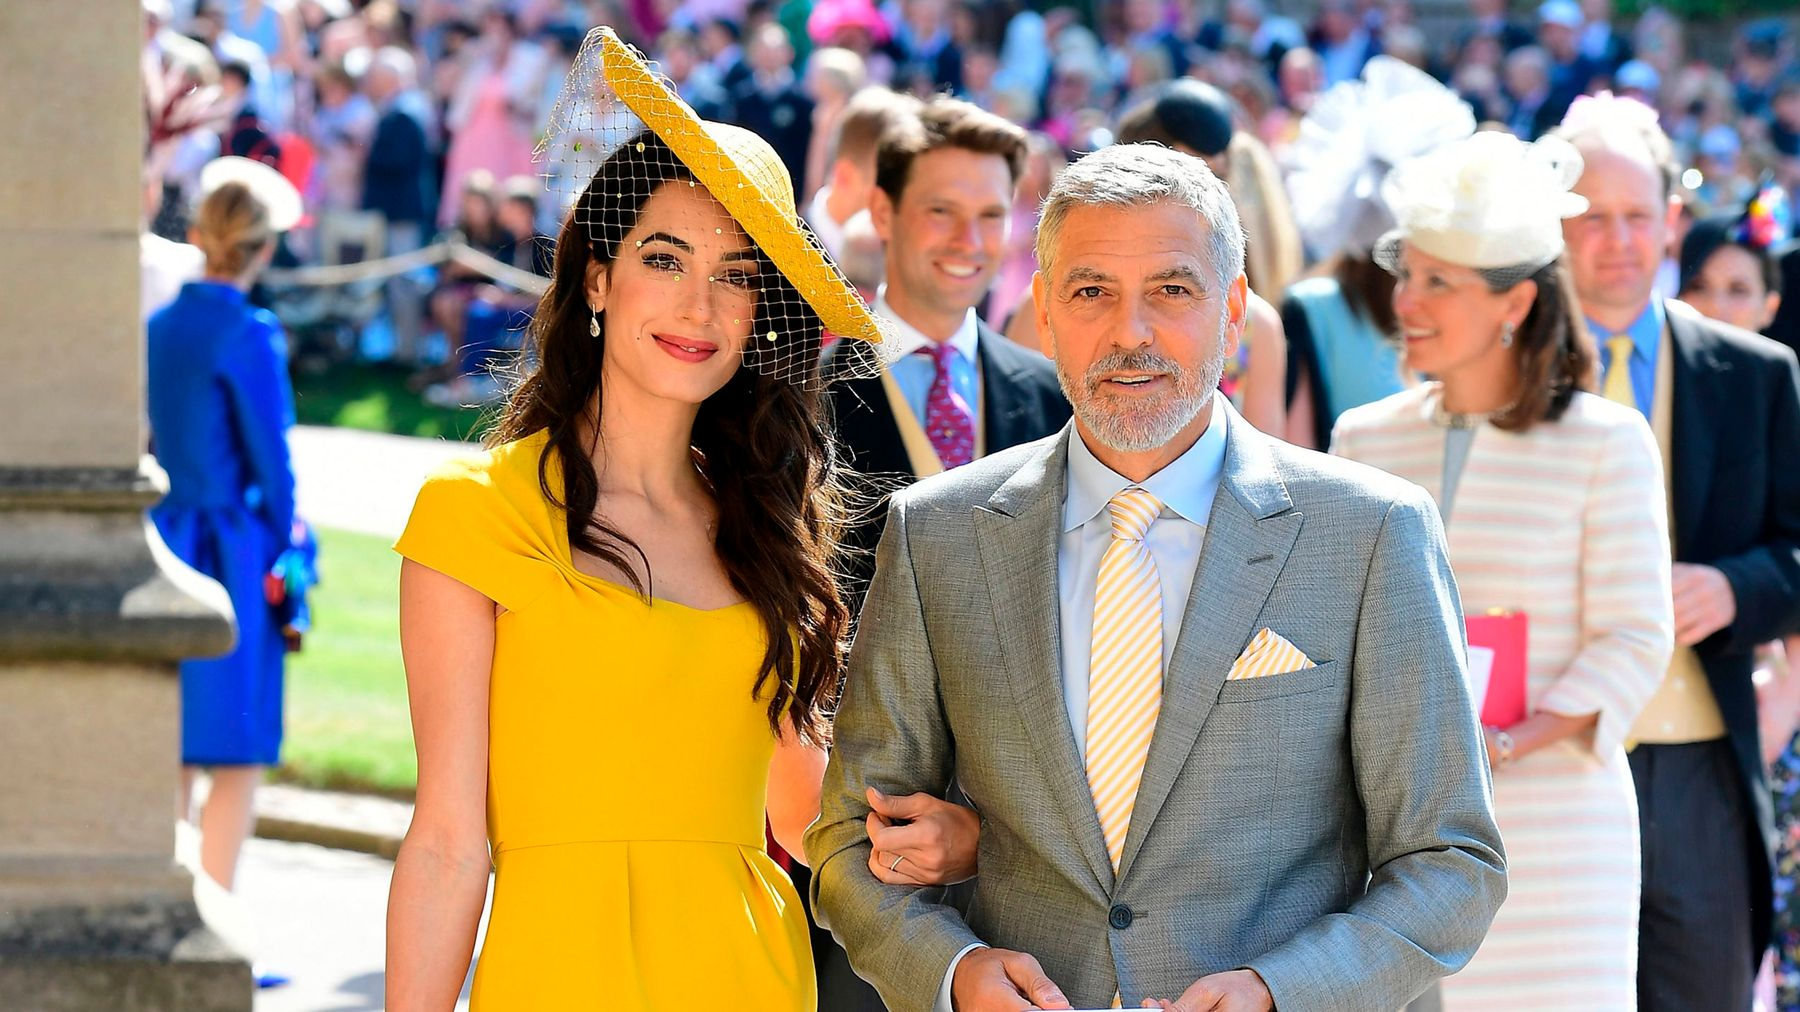 Amal Clooney Royal Wedding.Meghan Markle And Amal Clooney S Mysterious Friendship An